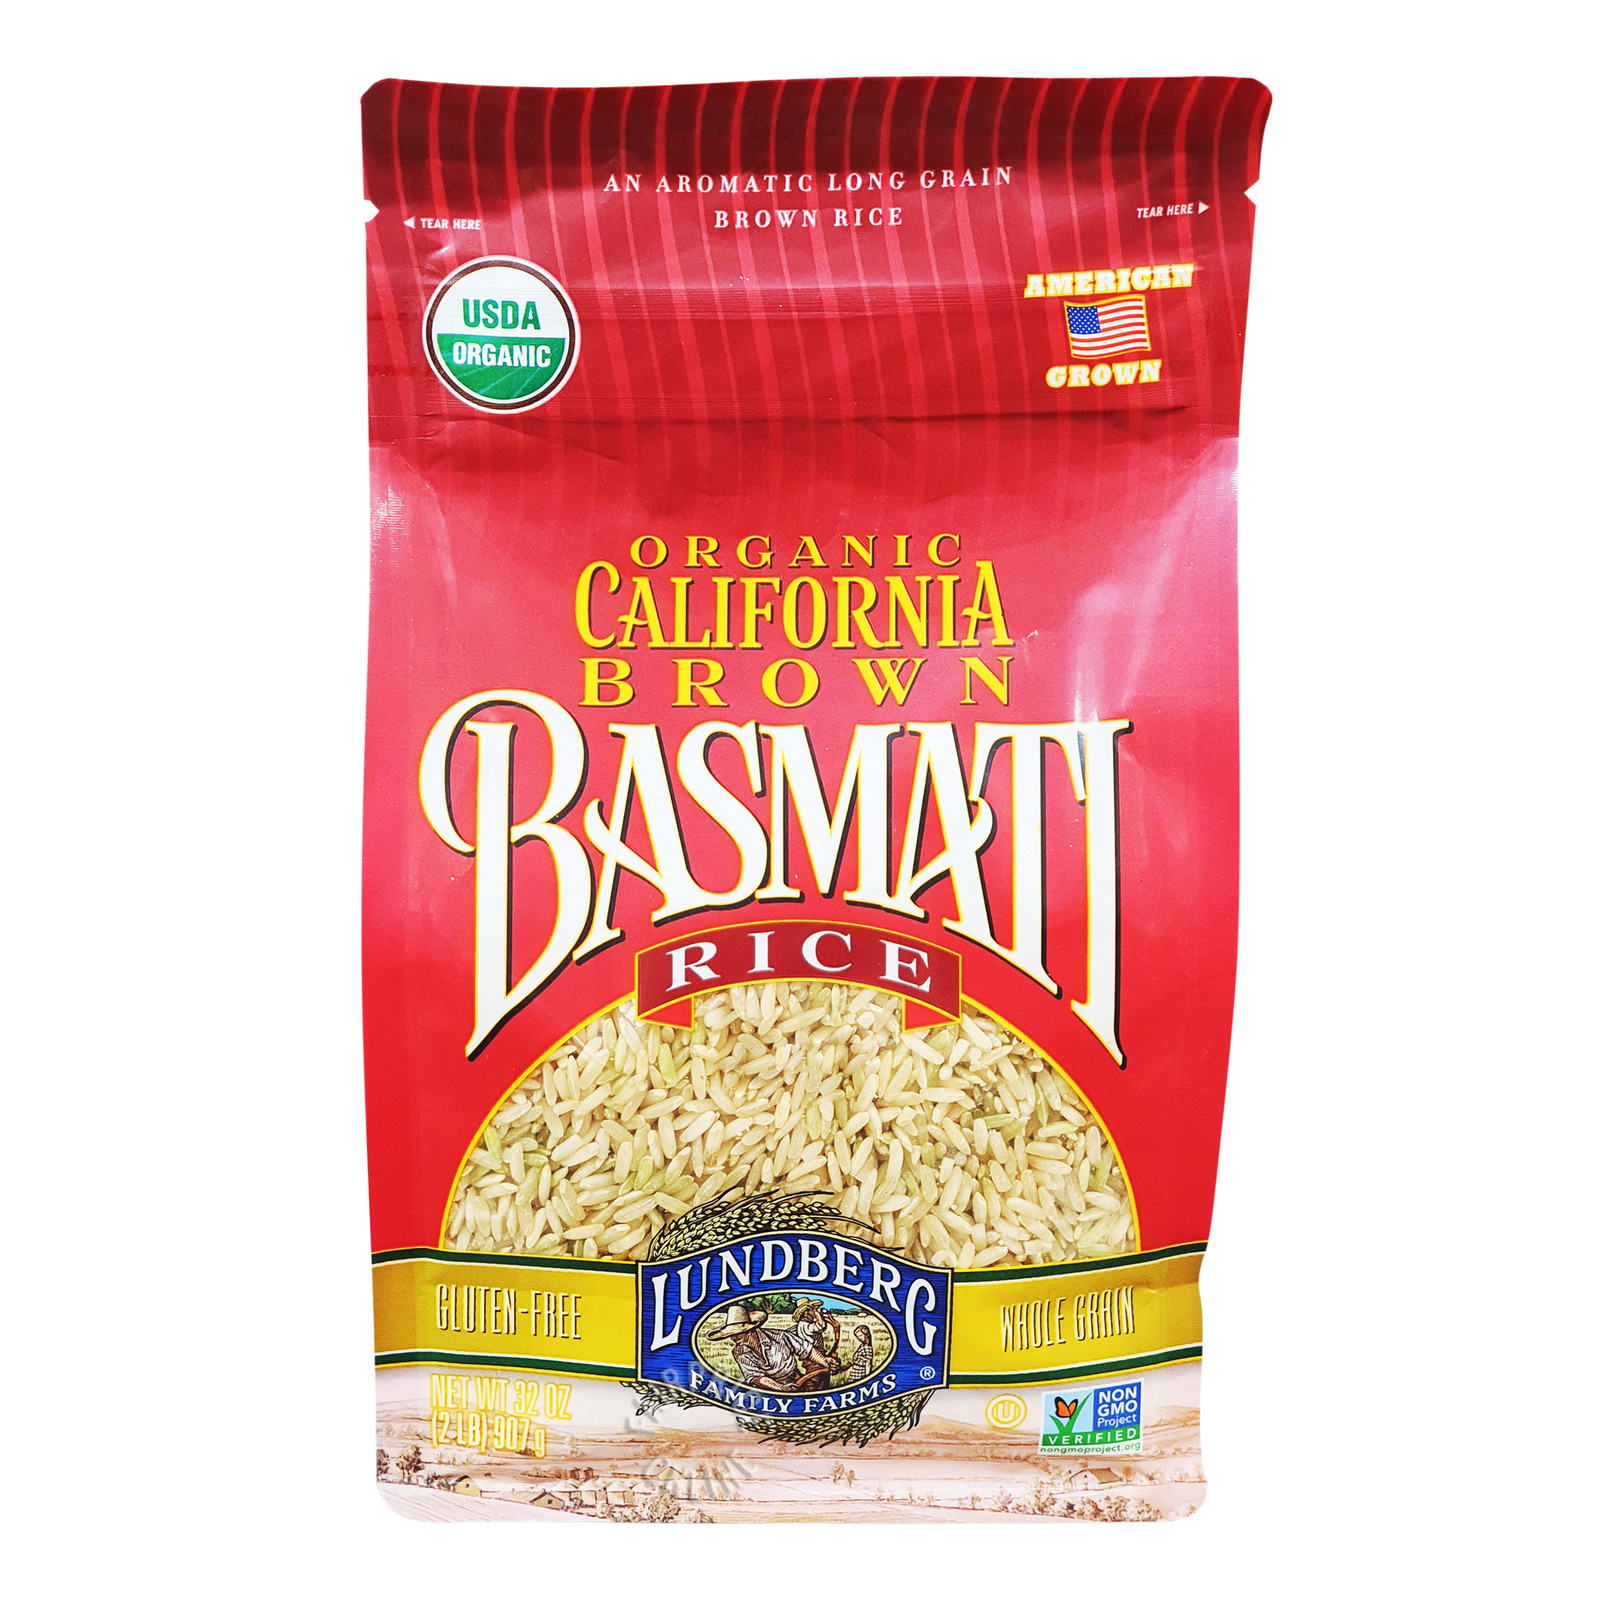 Lundberg Organic Brown Rice - California Basmati